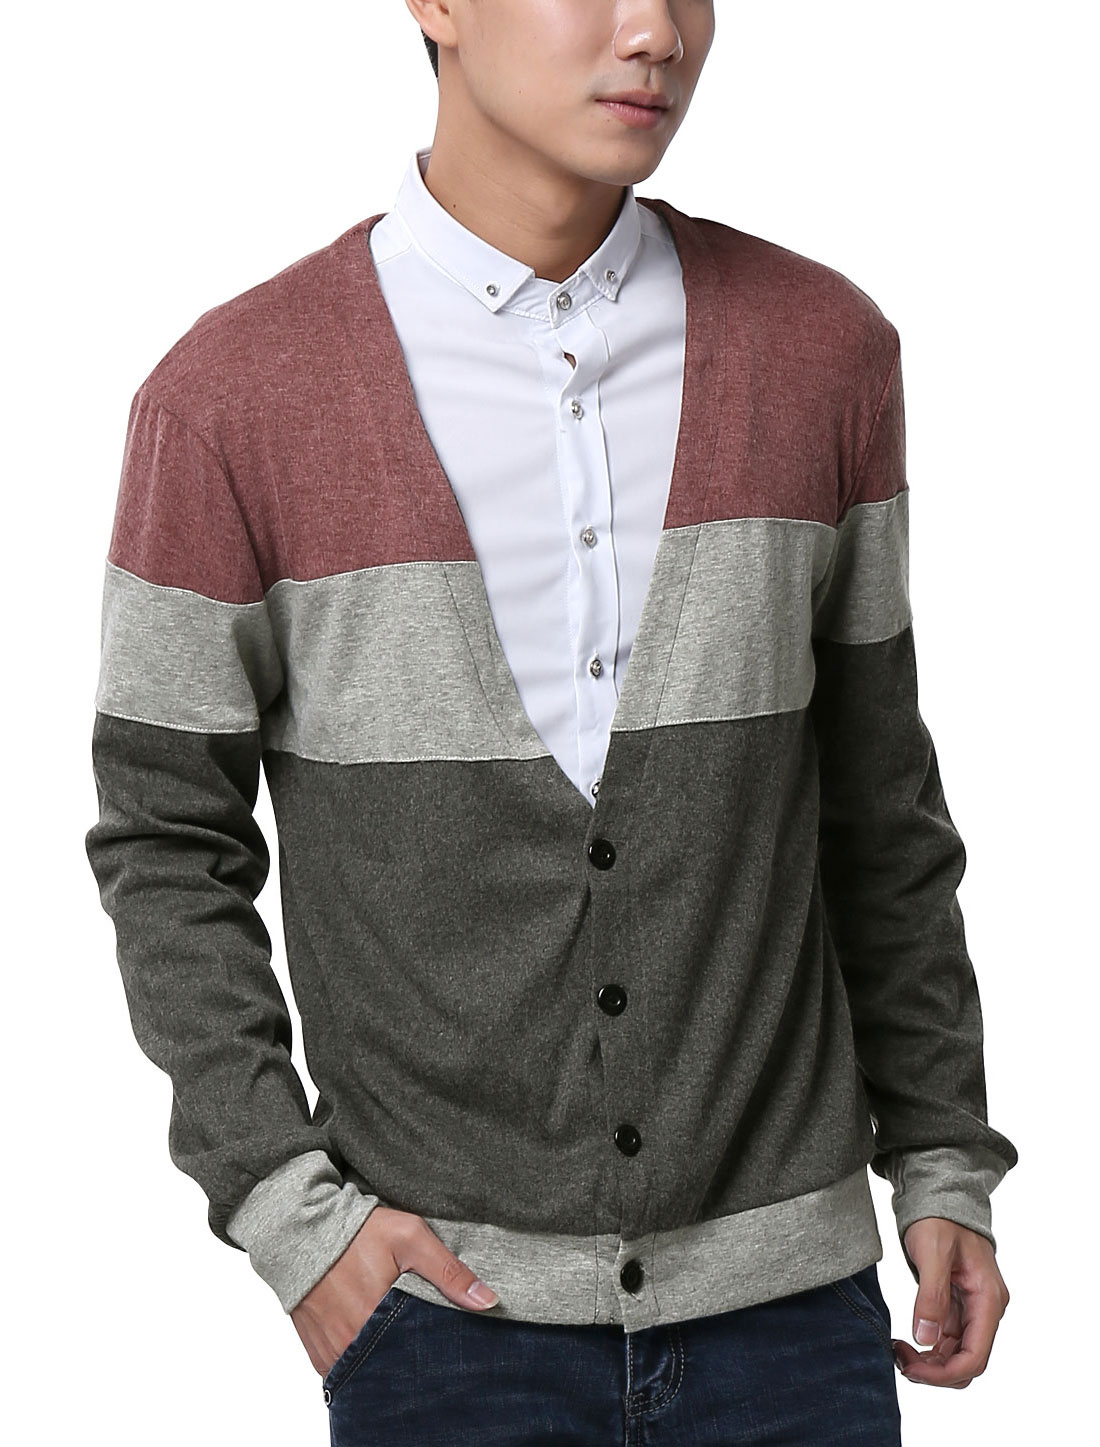 Men Long Sleeve Deep V Neck Color-Block Button Down Cardigan Gray Burgundy M